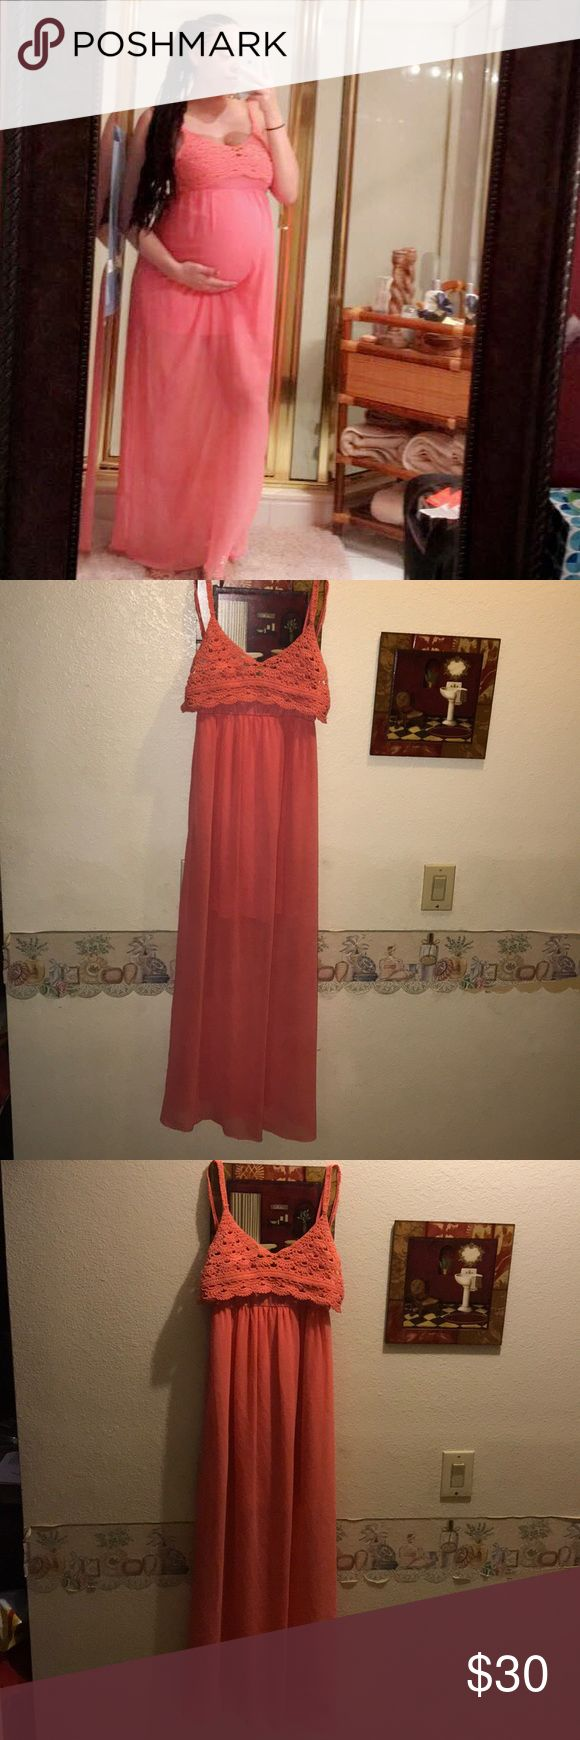 Pink Sheer Long Dress w/ Slip In new condition, no flaws. Includes attached crotchet crop top.  No size tag, but fits a small up to large. I wore it once while pregnant. Dresses Maxi